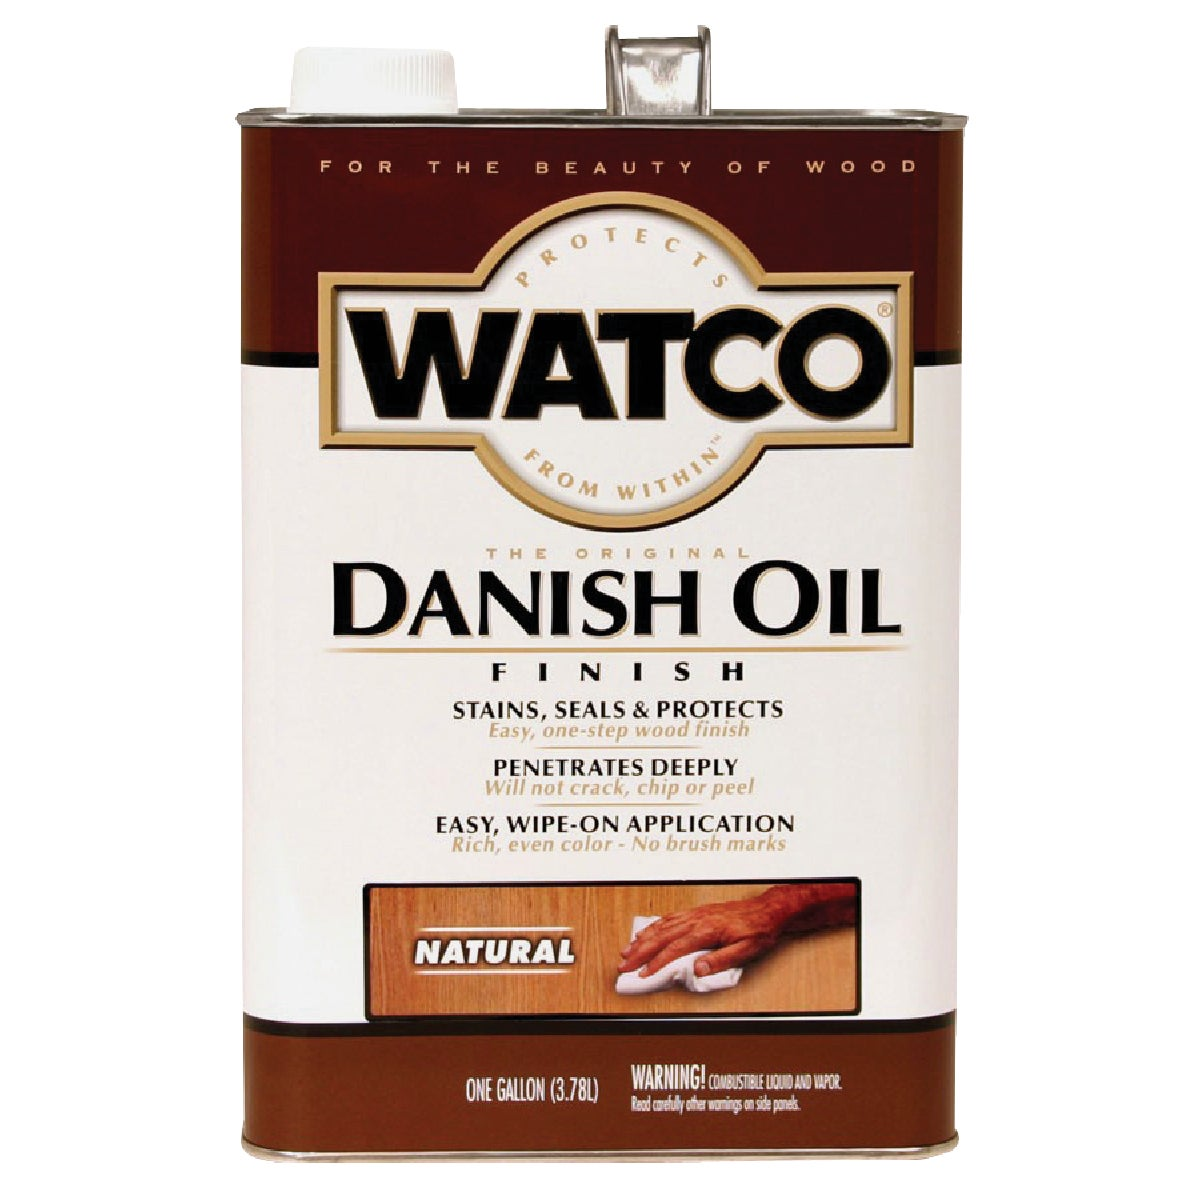 NATURAL DANISH OIL - 65731 by Rustoleum